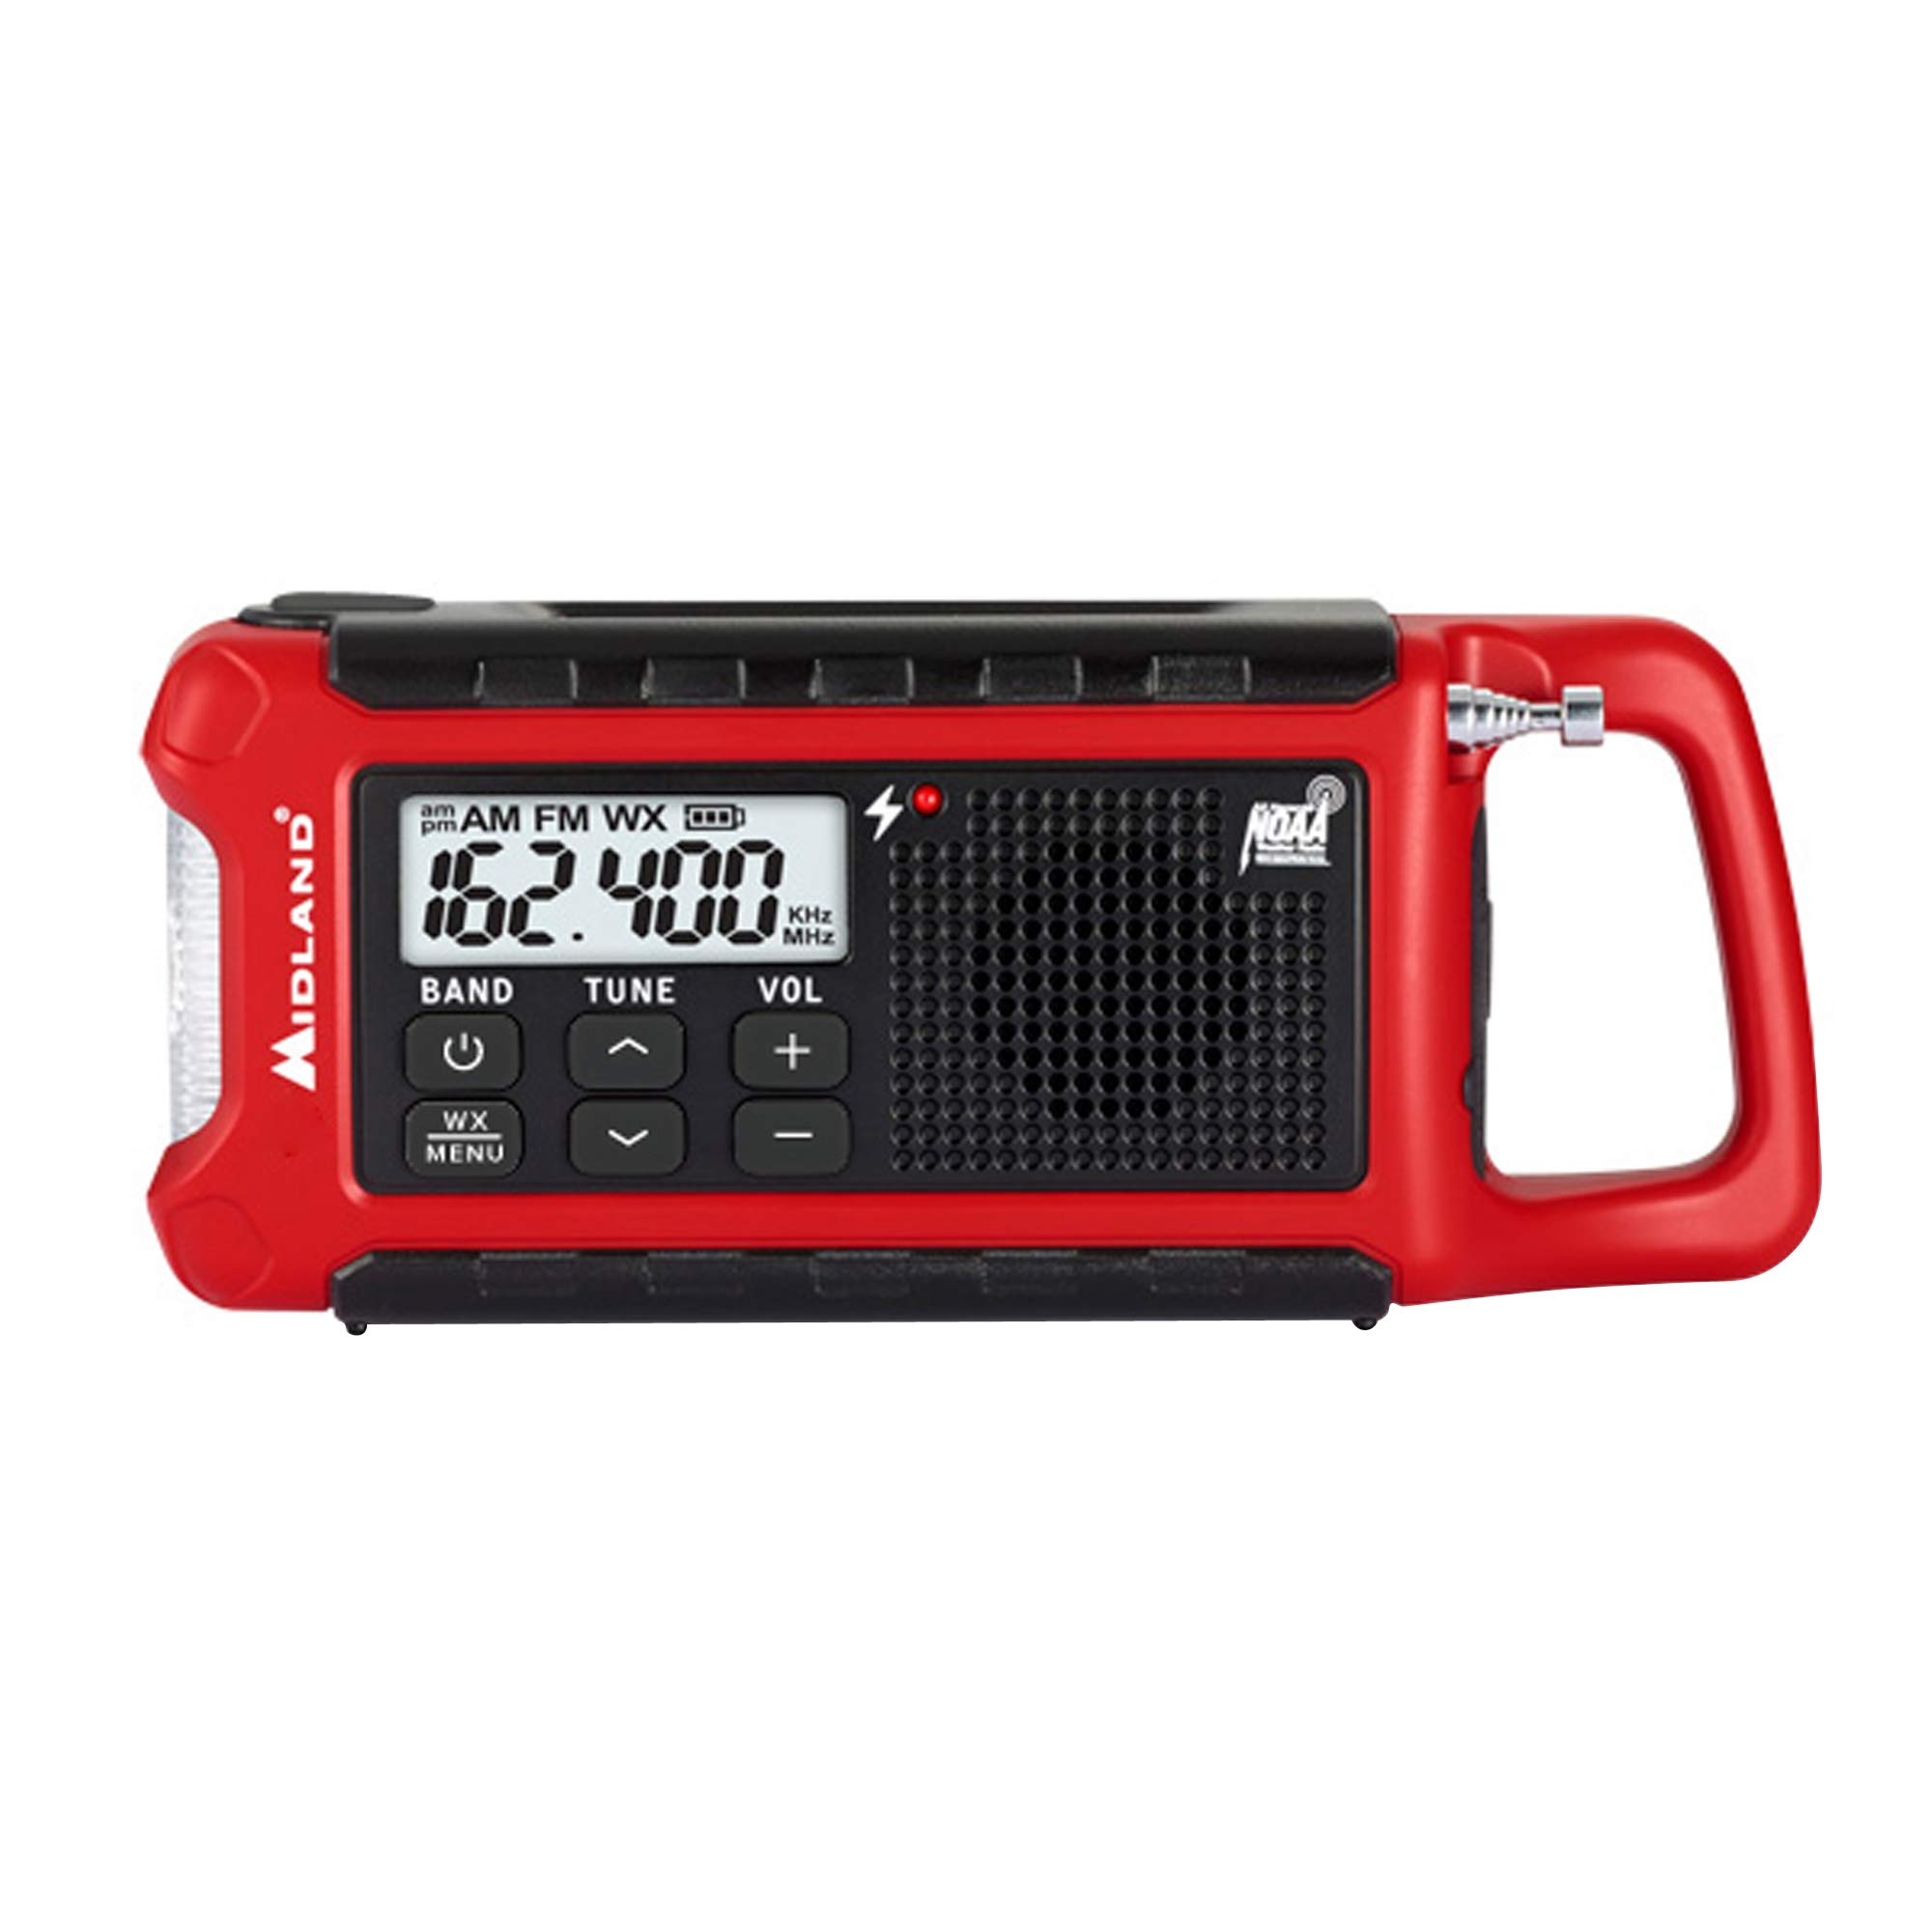 Midland - ER210, Emergency Compact Crank Weather AM/FM Radio - Multiple Power Sources, SOS Emergency Flashlight, NOAA Weather Scan + Alert, & Smartphone/Tablet Charger (Red/Black)